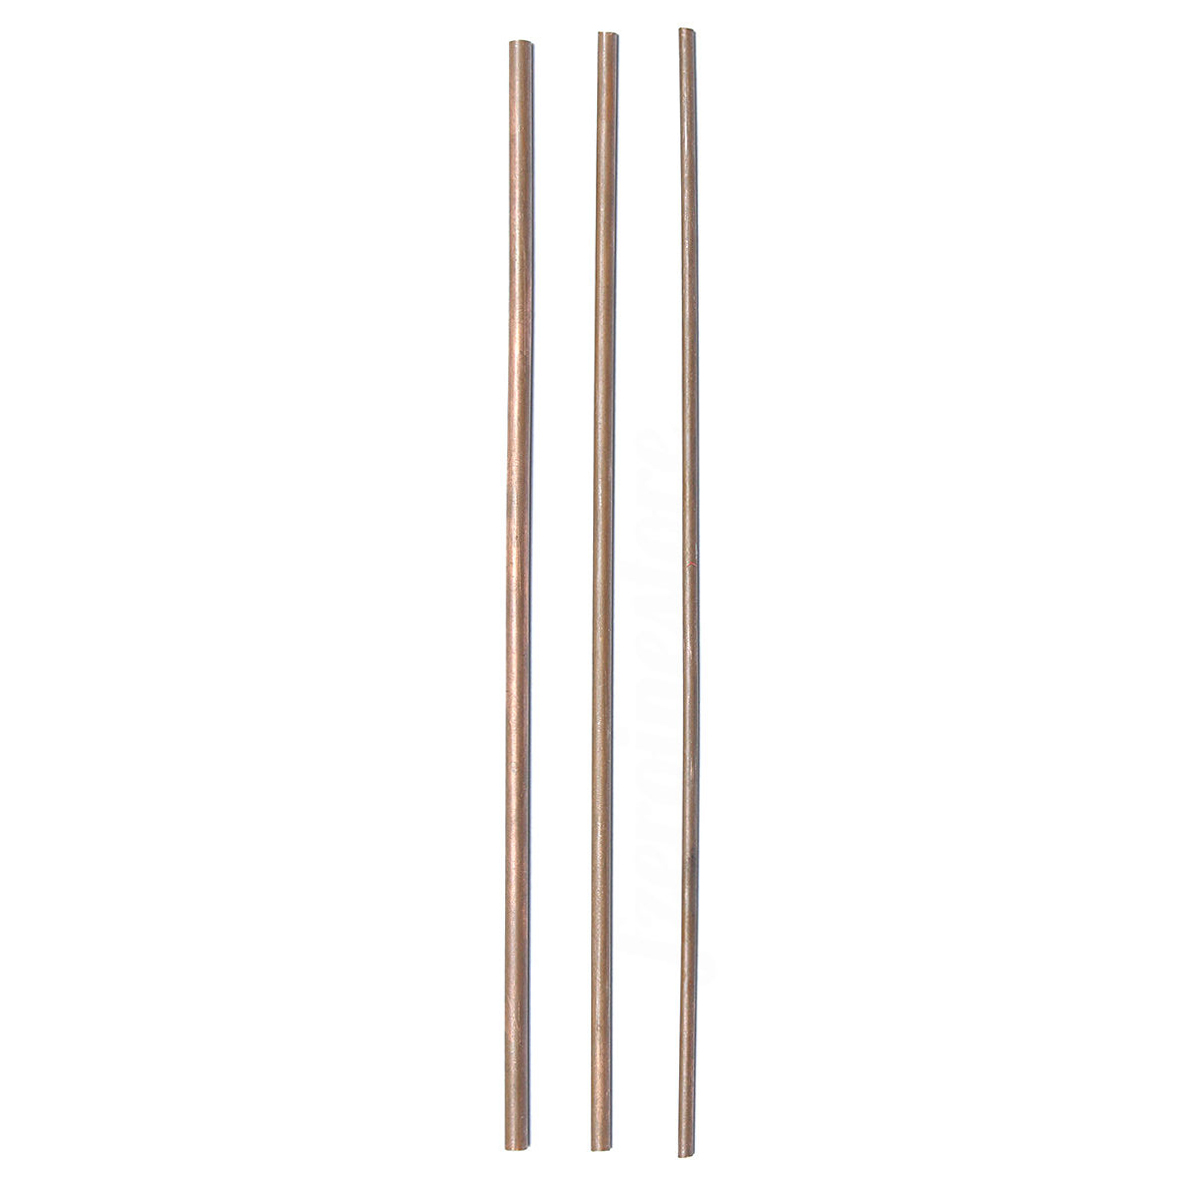 1pc High Purity DIY Copper Tube Plumbing Pipe/Tube Rod 3mm/4mm/5mm Inner Diameter 300mm Length 80x2mm copper end feed euqal tee 3 way pipe fitting plumbing for gas water oil